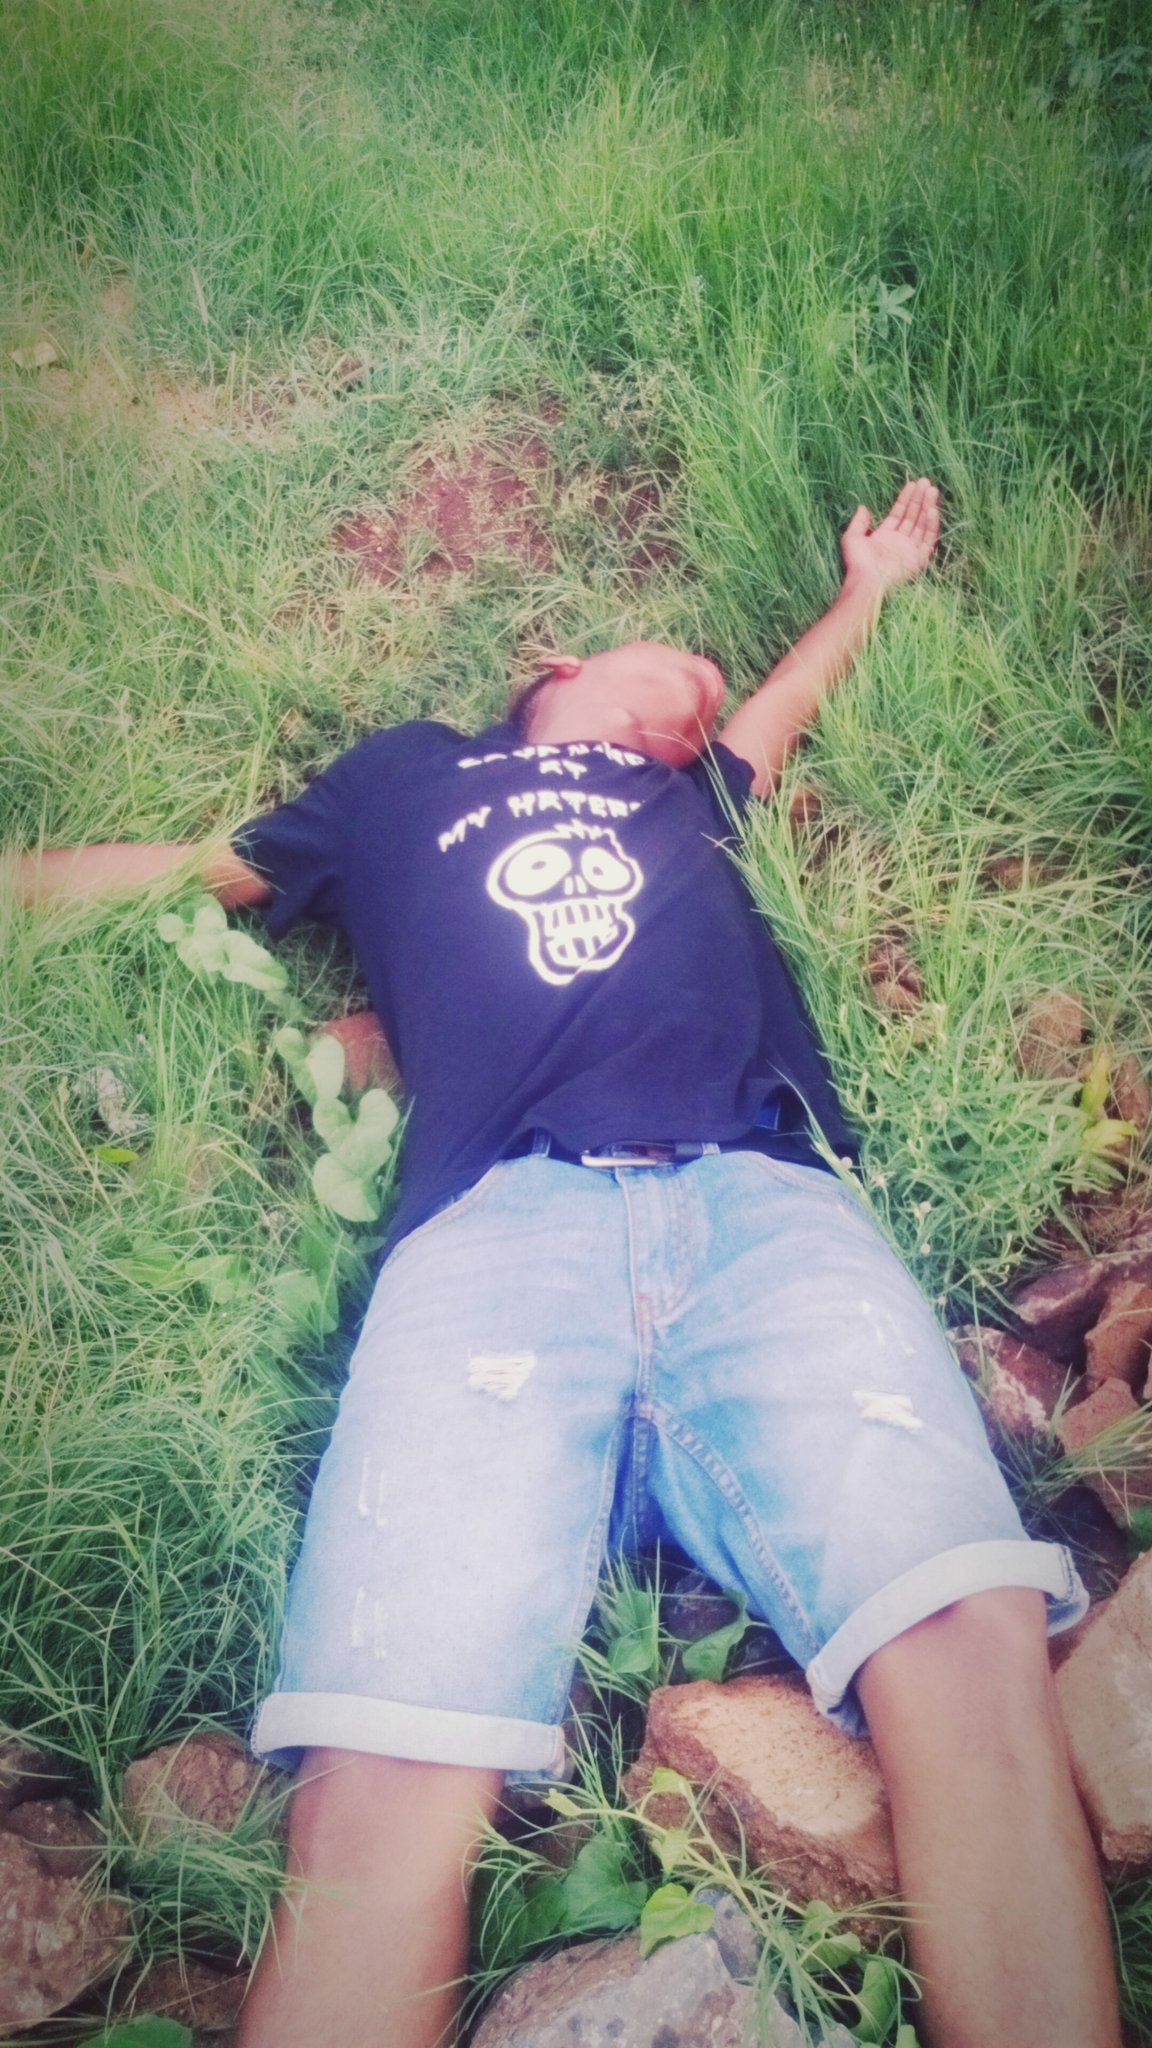 #DeadPose  @TrendingSAon3 https://t.co/hPCL8BnBDF